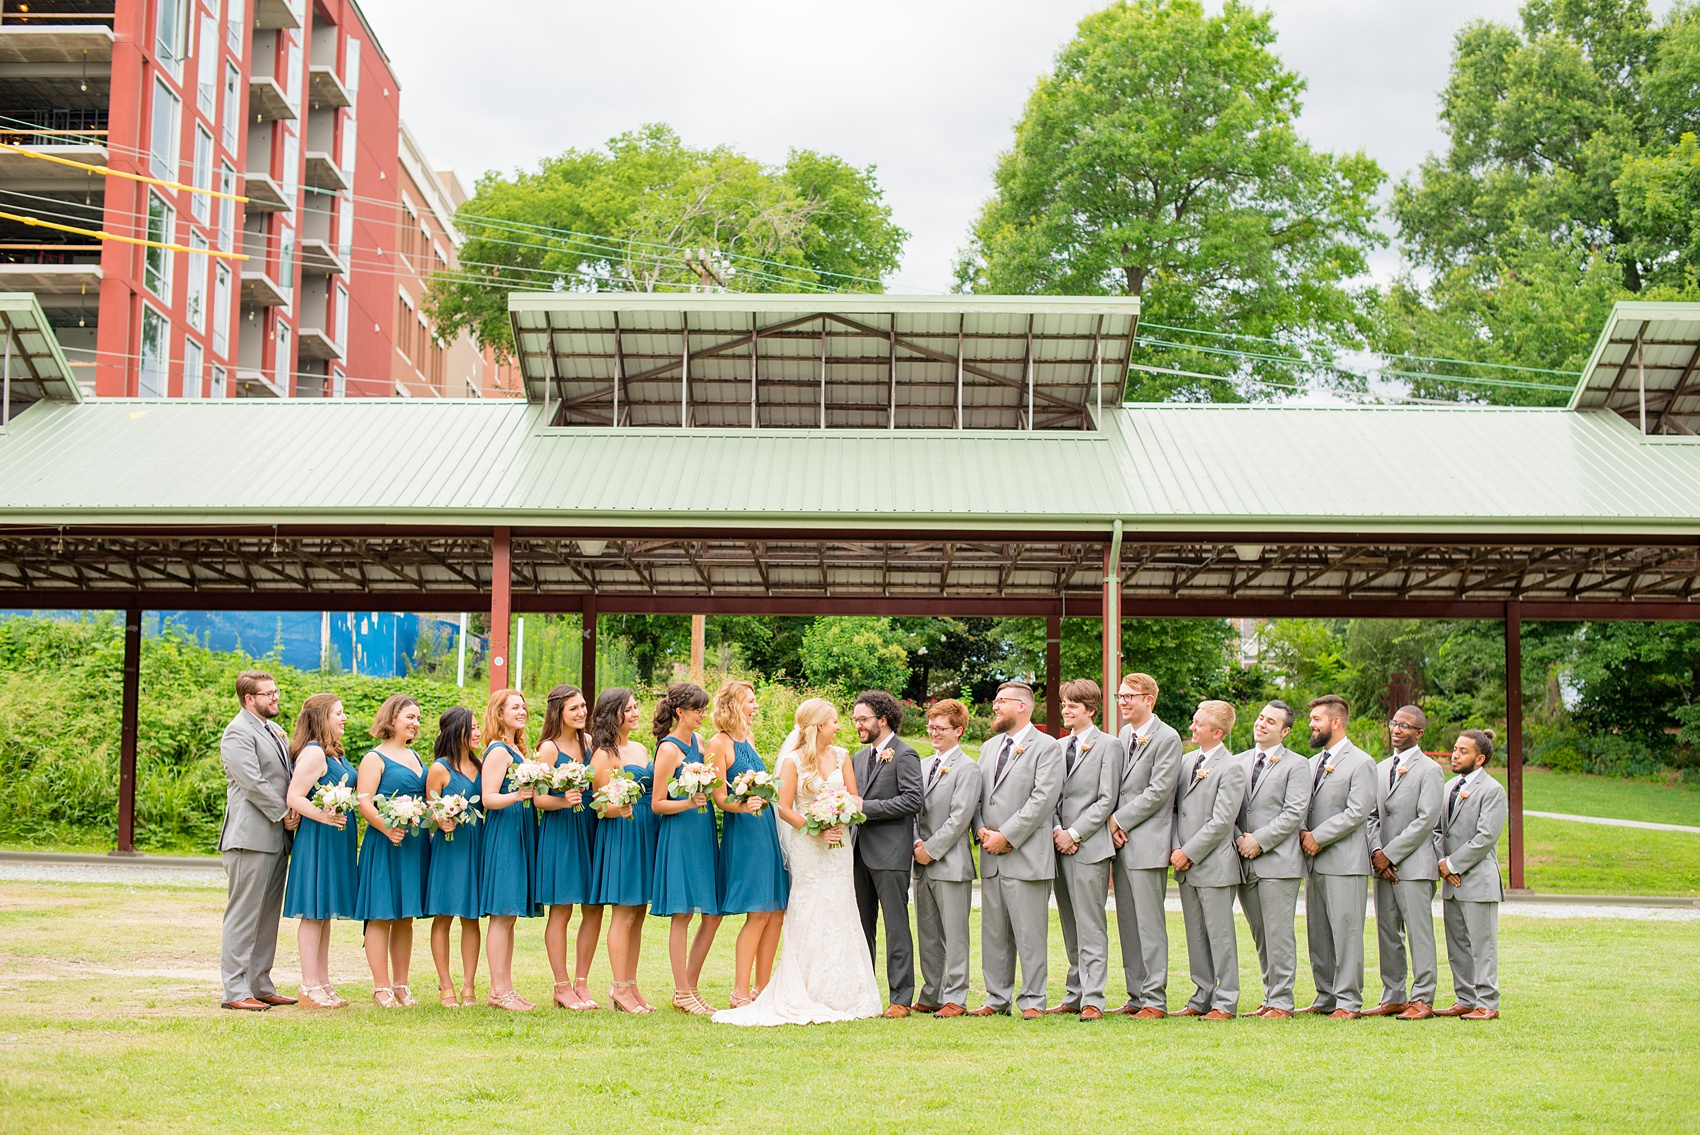 Mikkel Paige Photography photos from a wedding in Durham, North Carolina. Picture of the large wedding party - with the bridesmaids in teal and groomsmen in grey - in a picture in the park.